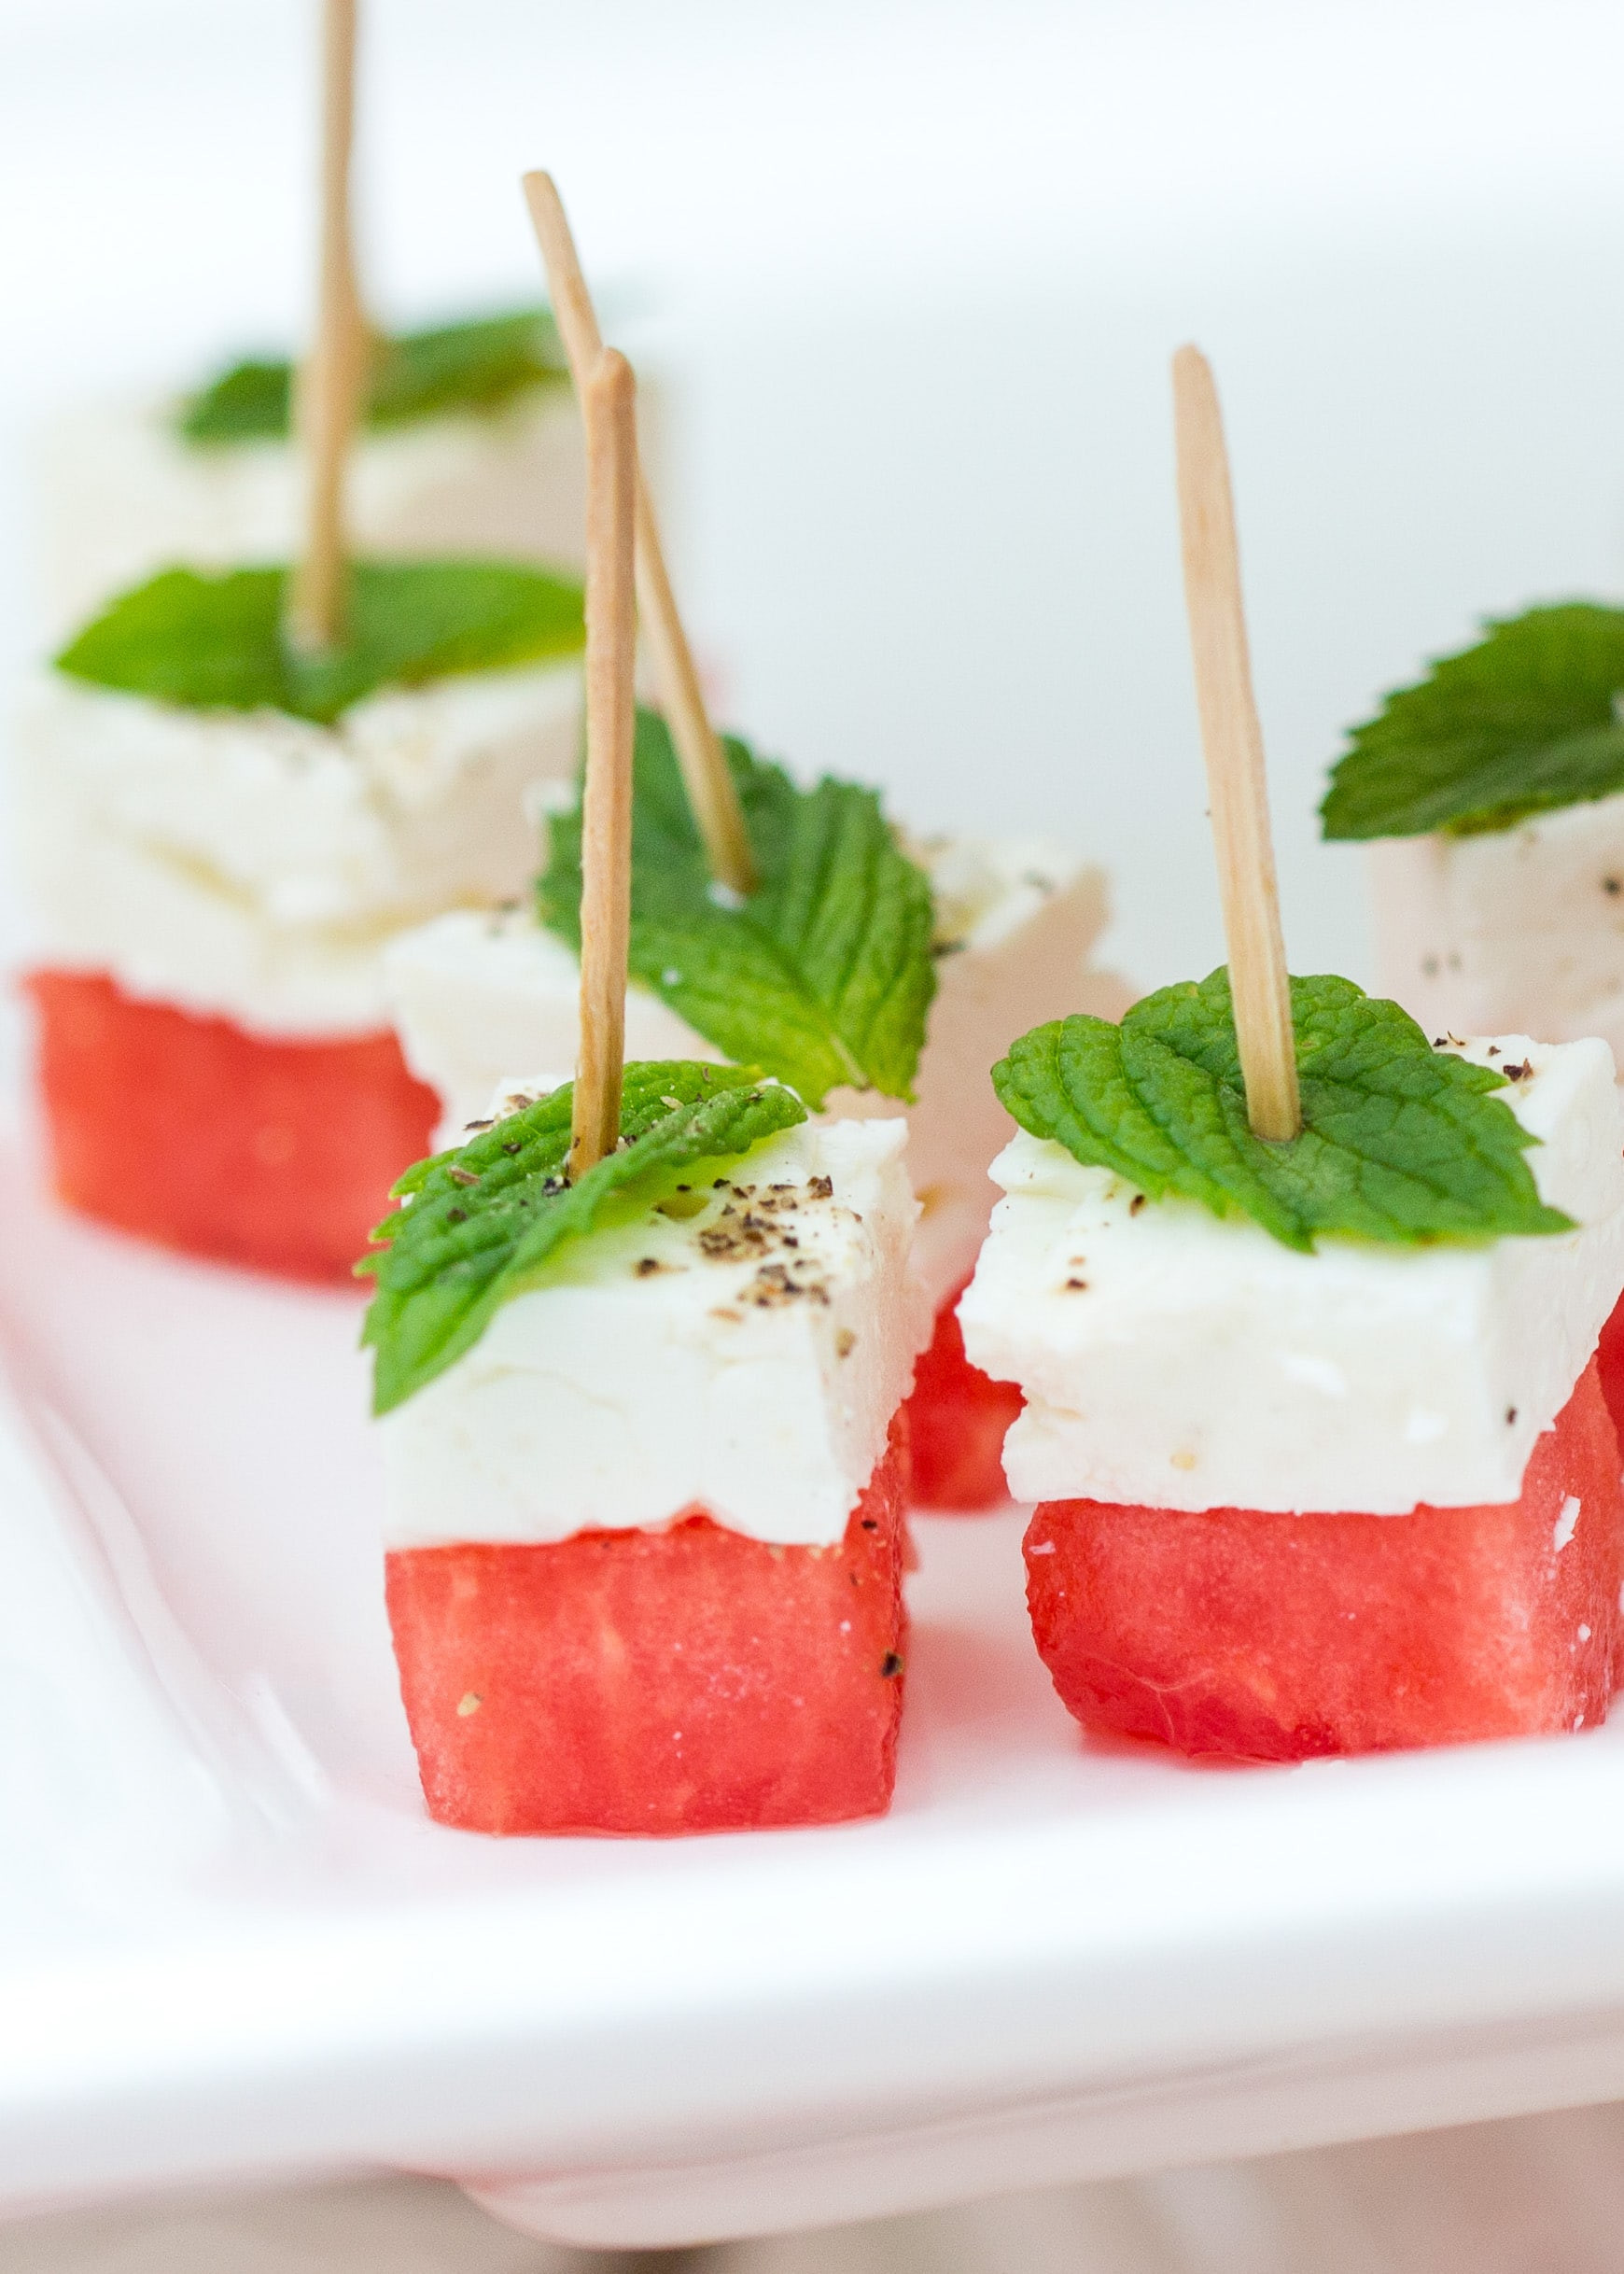 Healthy Party Appetizers  Healthy Summer Appetizers Easy & Delish Pizzazzerie